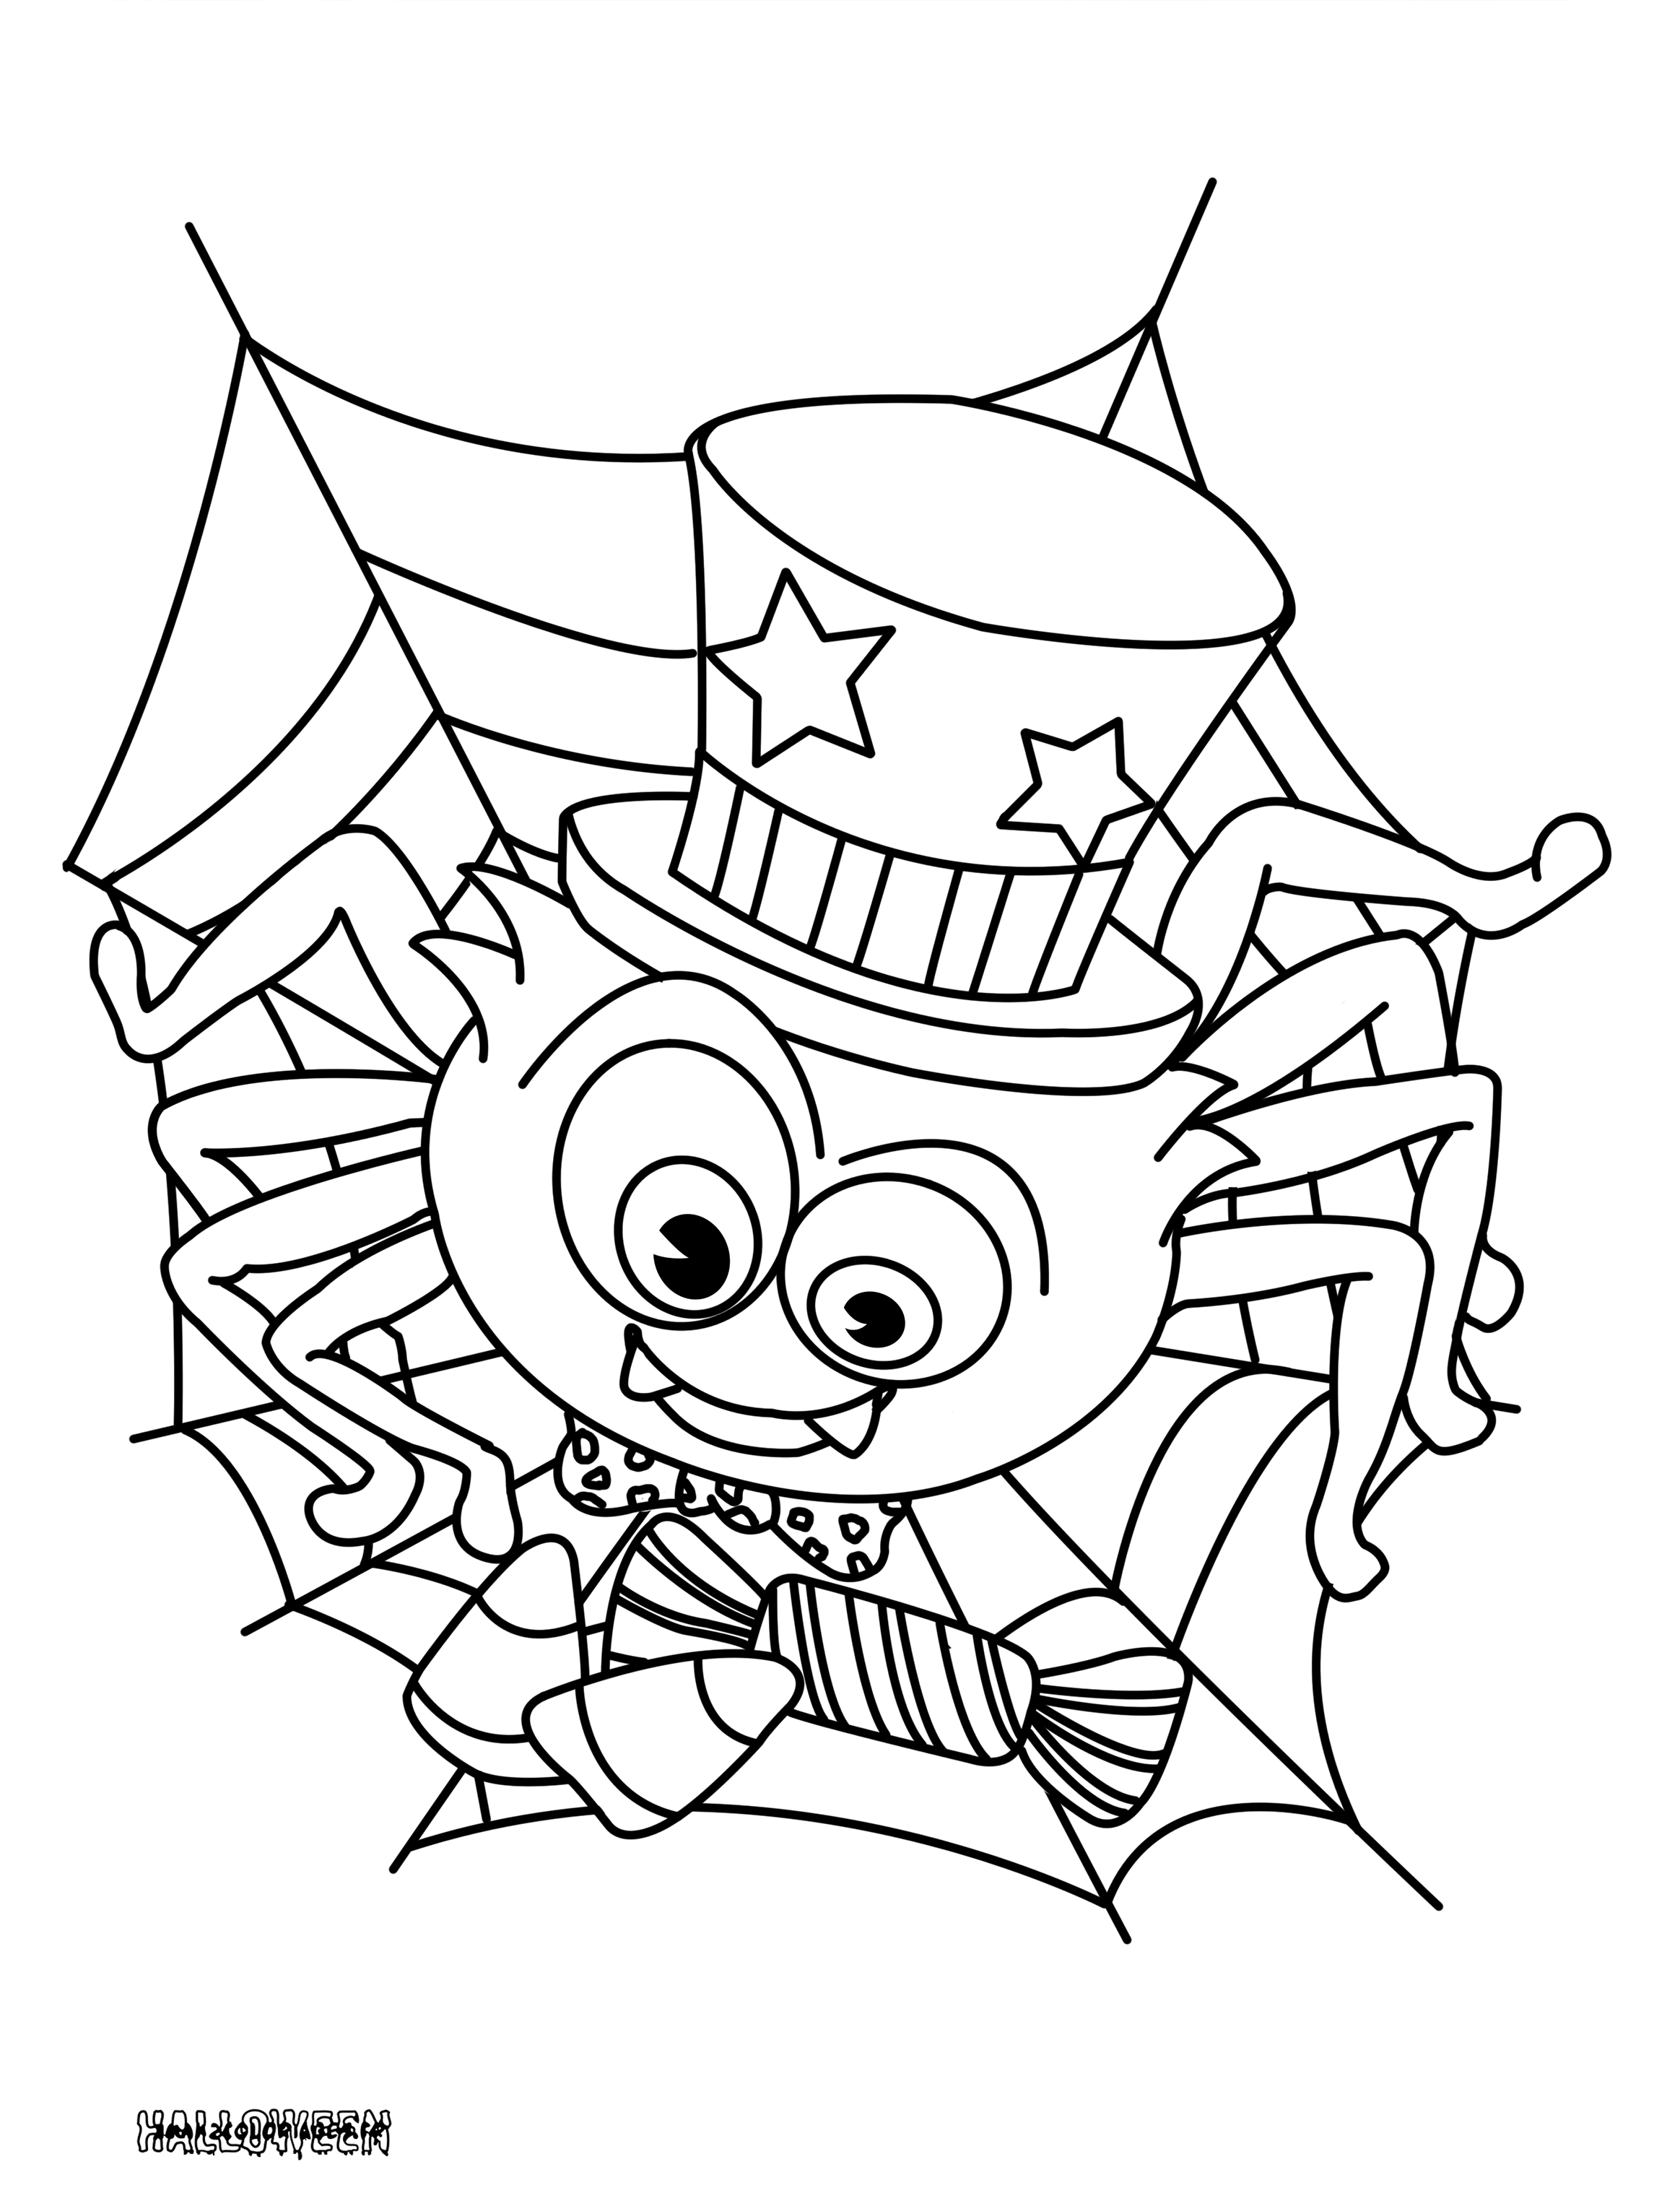 Coloriages une araign e d 39 halloween a imprimer - Coloriages d halloween ...